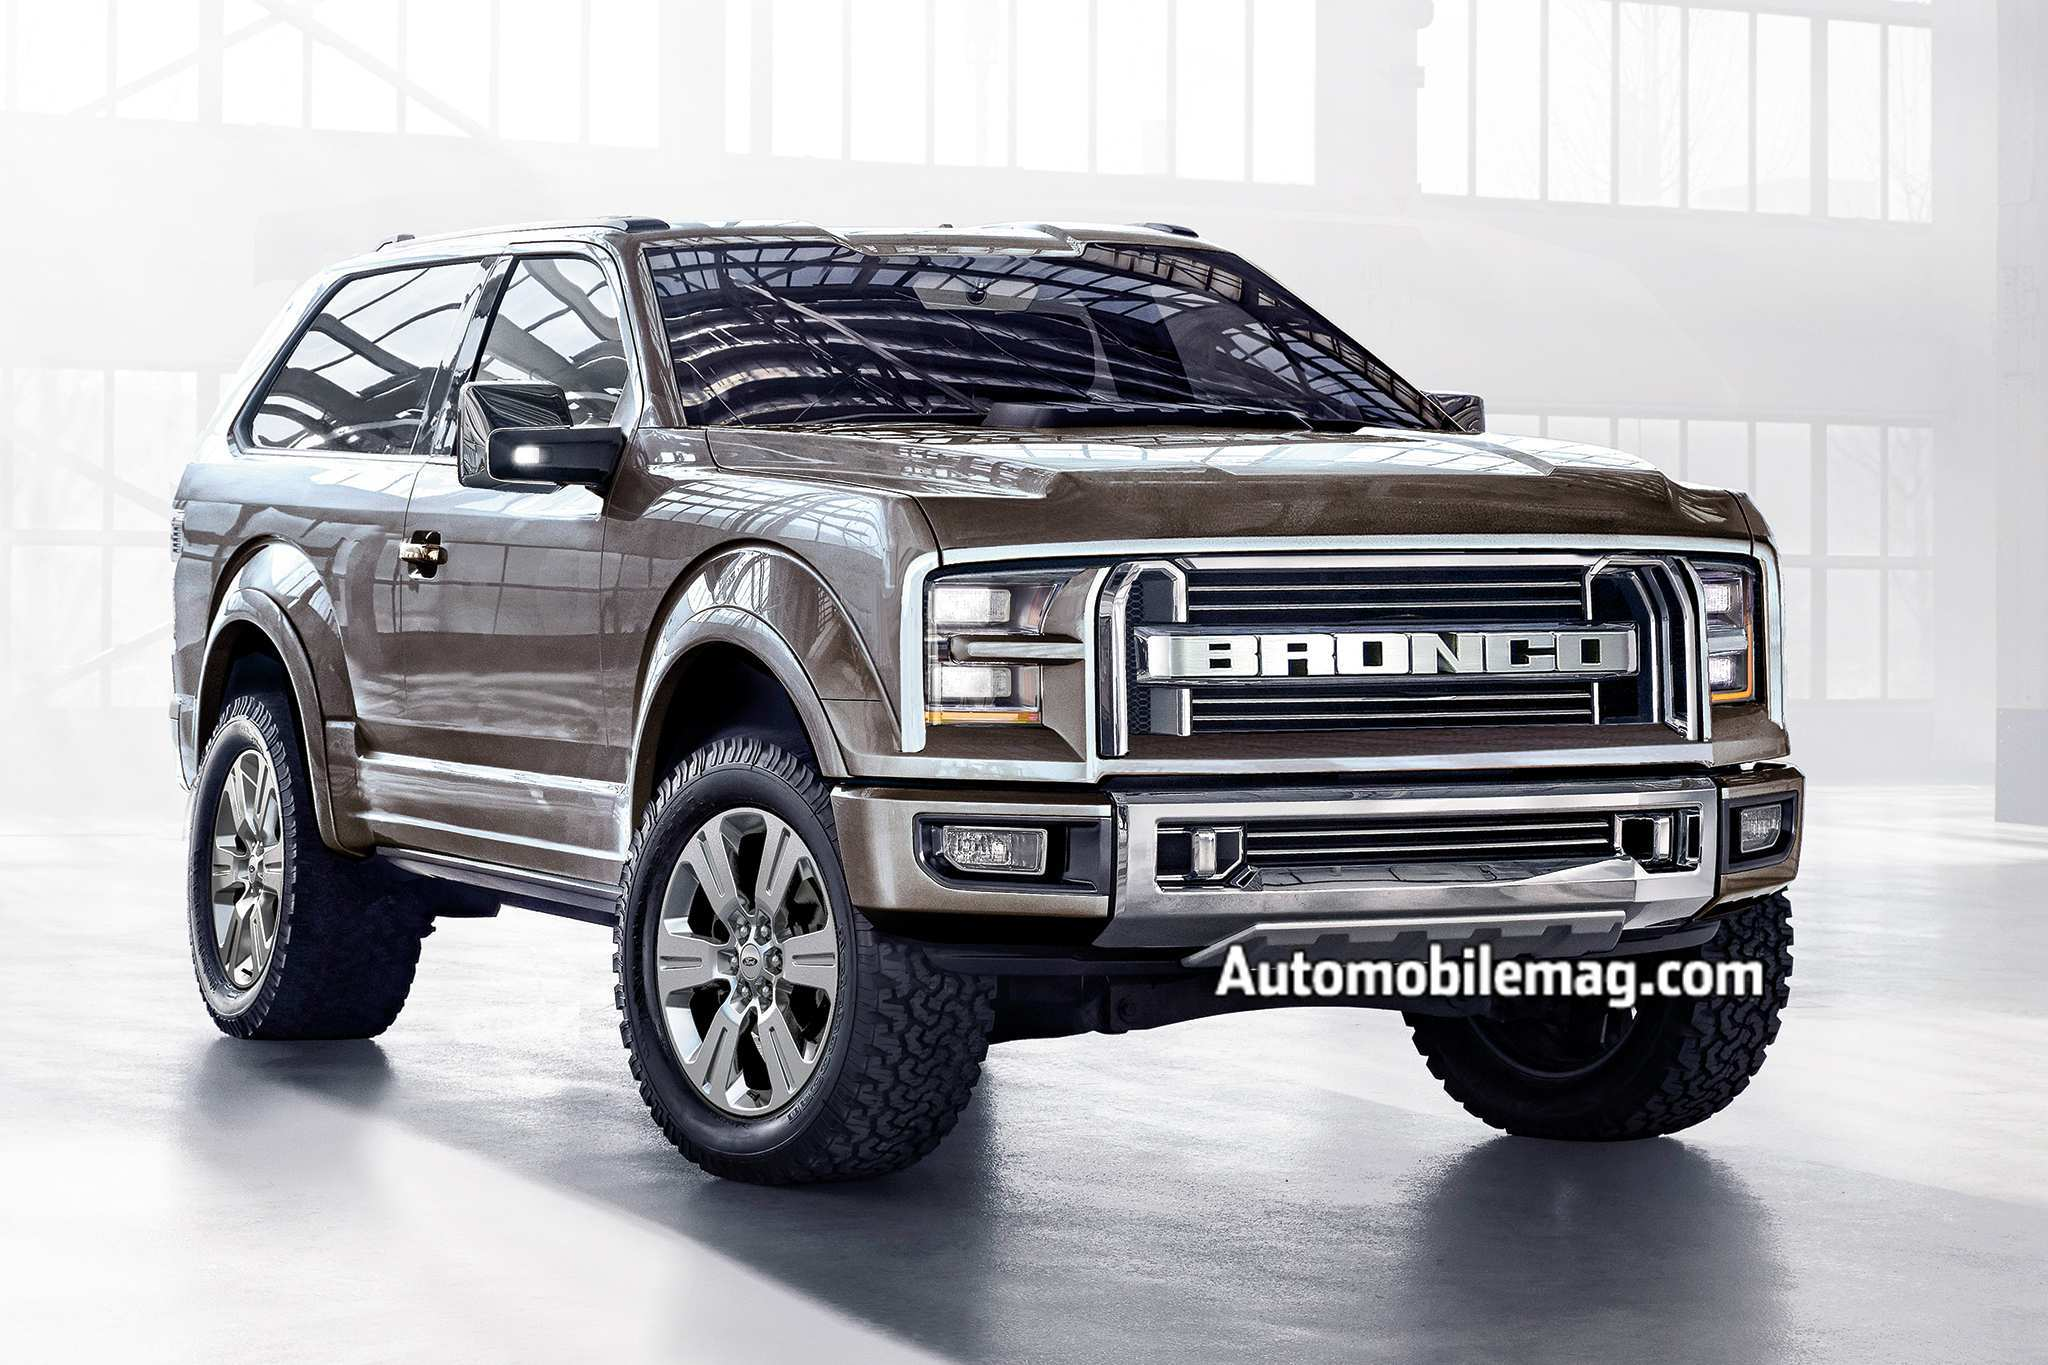 53 The Best 2020 Ford Bronco Wallpaper New Review